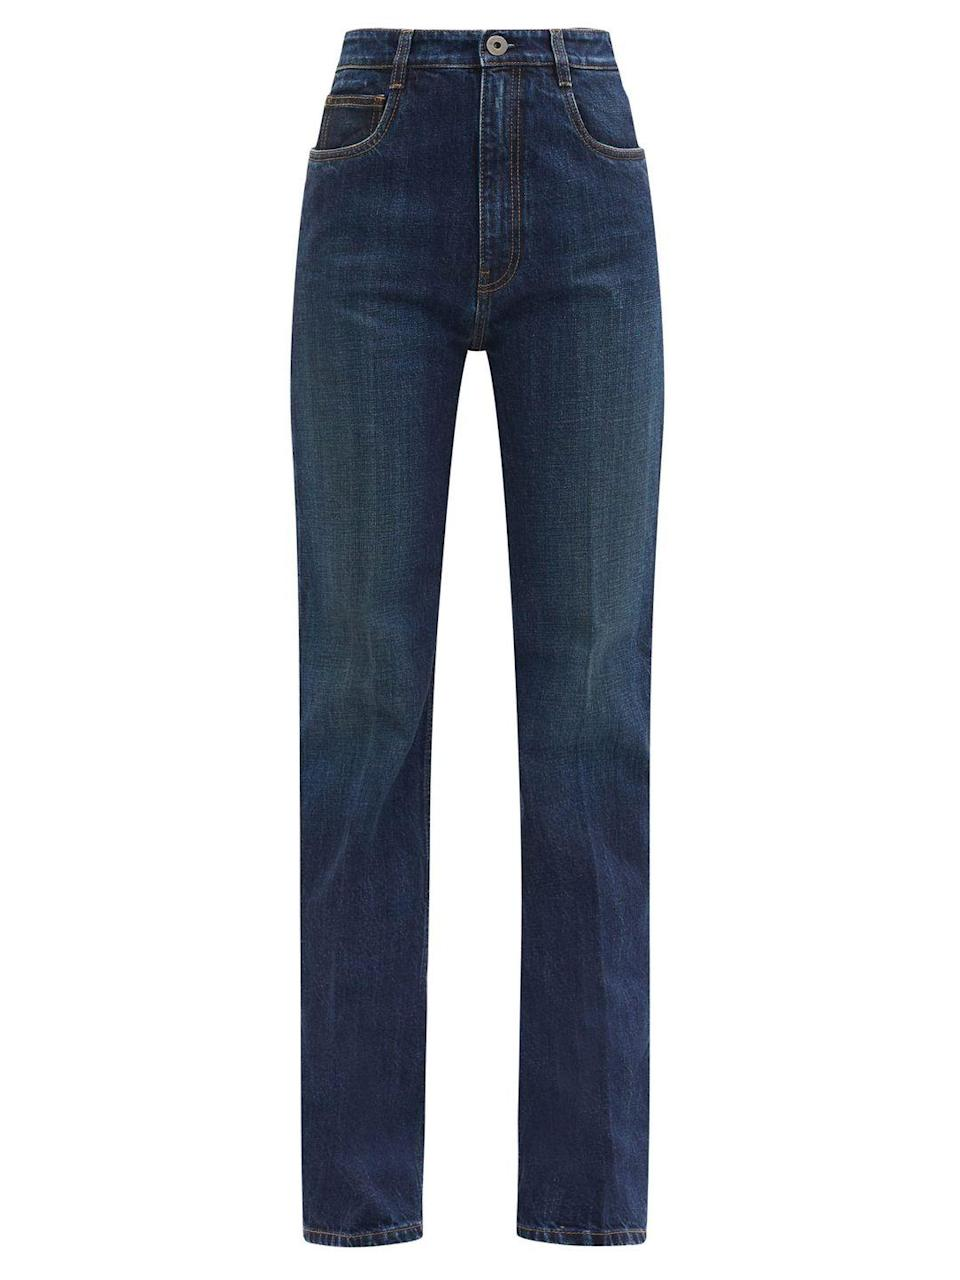 """<p>High-rise flared jeans, £530, Prada at Matchesfashion.com.</p><p><a class=""""link rapid-noclick-resp"""" href=""""https://go.redirectingat.com?id=127X1599956&url=https%3A%2F%2Fwww.matchesfashion.com%2Fproducts%2FPrada-High-rise-flared-jeans-1377234&sref=https%3A%2F%2Fwww.townandcountrymag.com%2Fuk%2Fstyle%2Ffashion%2Fg35053771%2Fnew-years-eve-party%2F"""" rel=""""nofollow noopener"""" target=""""_blank"""" data-ylk=""""slk:SHOP NOW"""">SHOP NOW</a> </p>"""